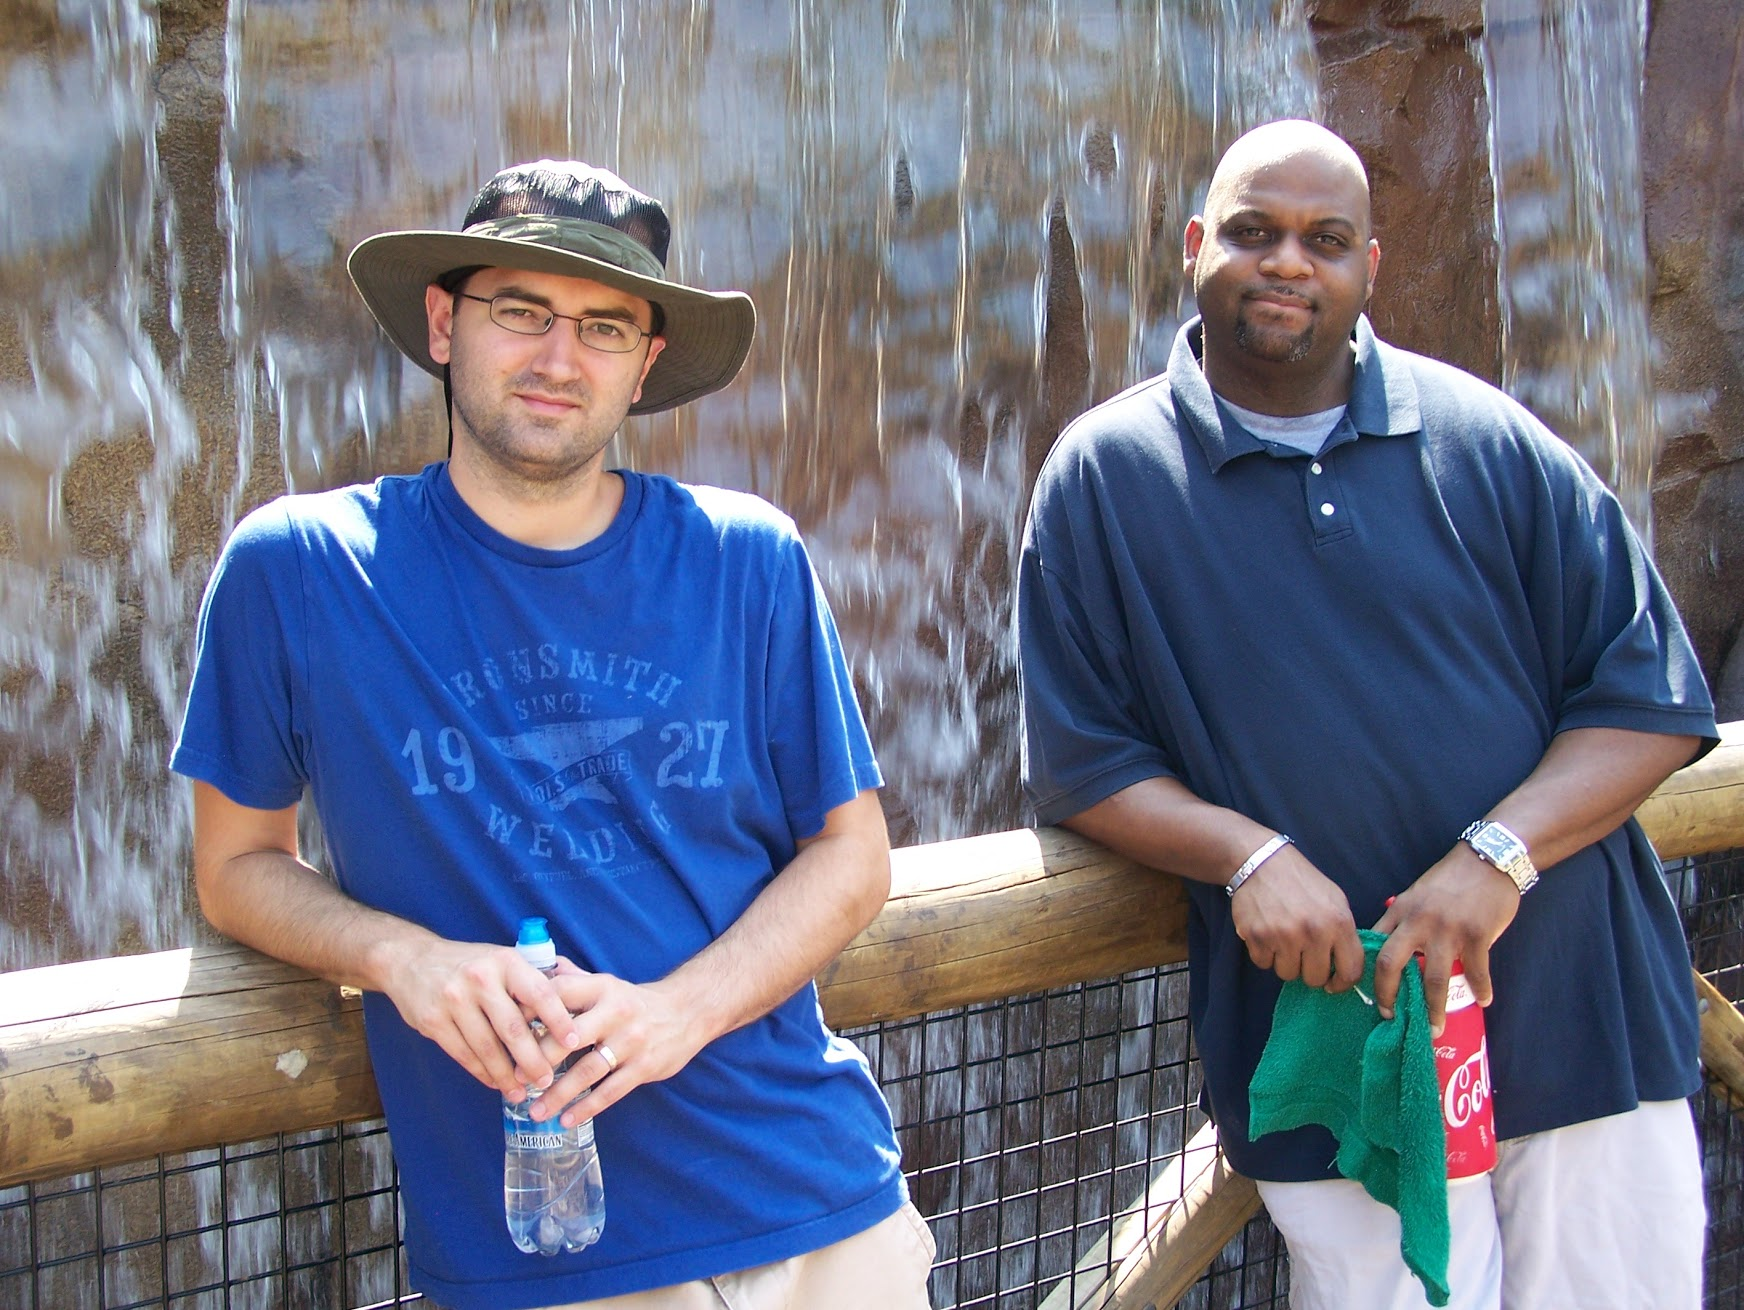 April 6, 2011 - This was at the Memphis Zoo. Last time we hung out in person. IT WAS HOT AS HELL.... which is why we both look miserable. It was actually a really fun day with he and my wife. Pre-beard for me! :)